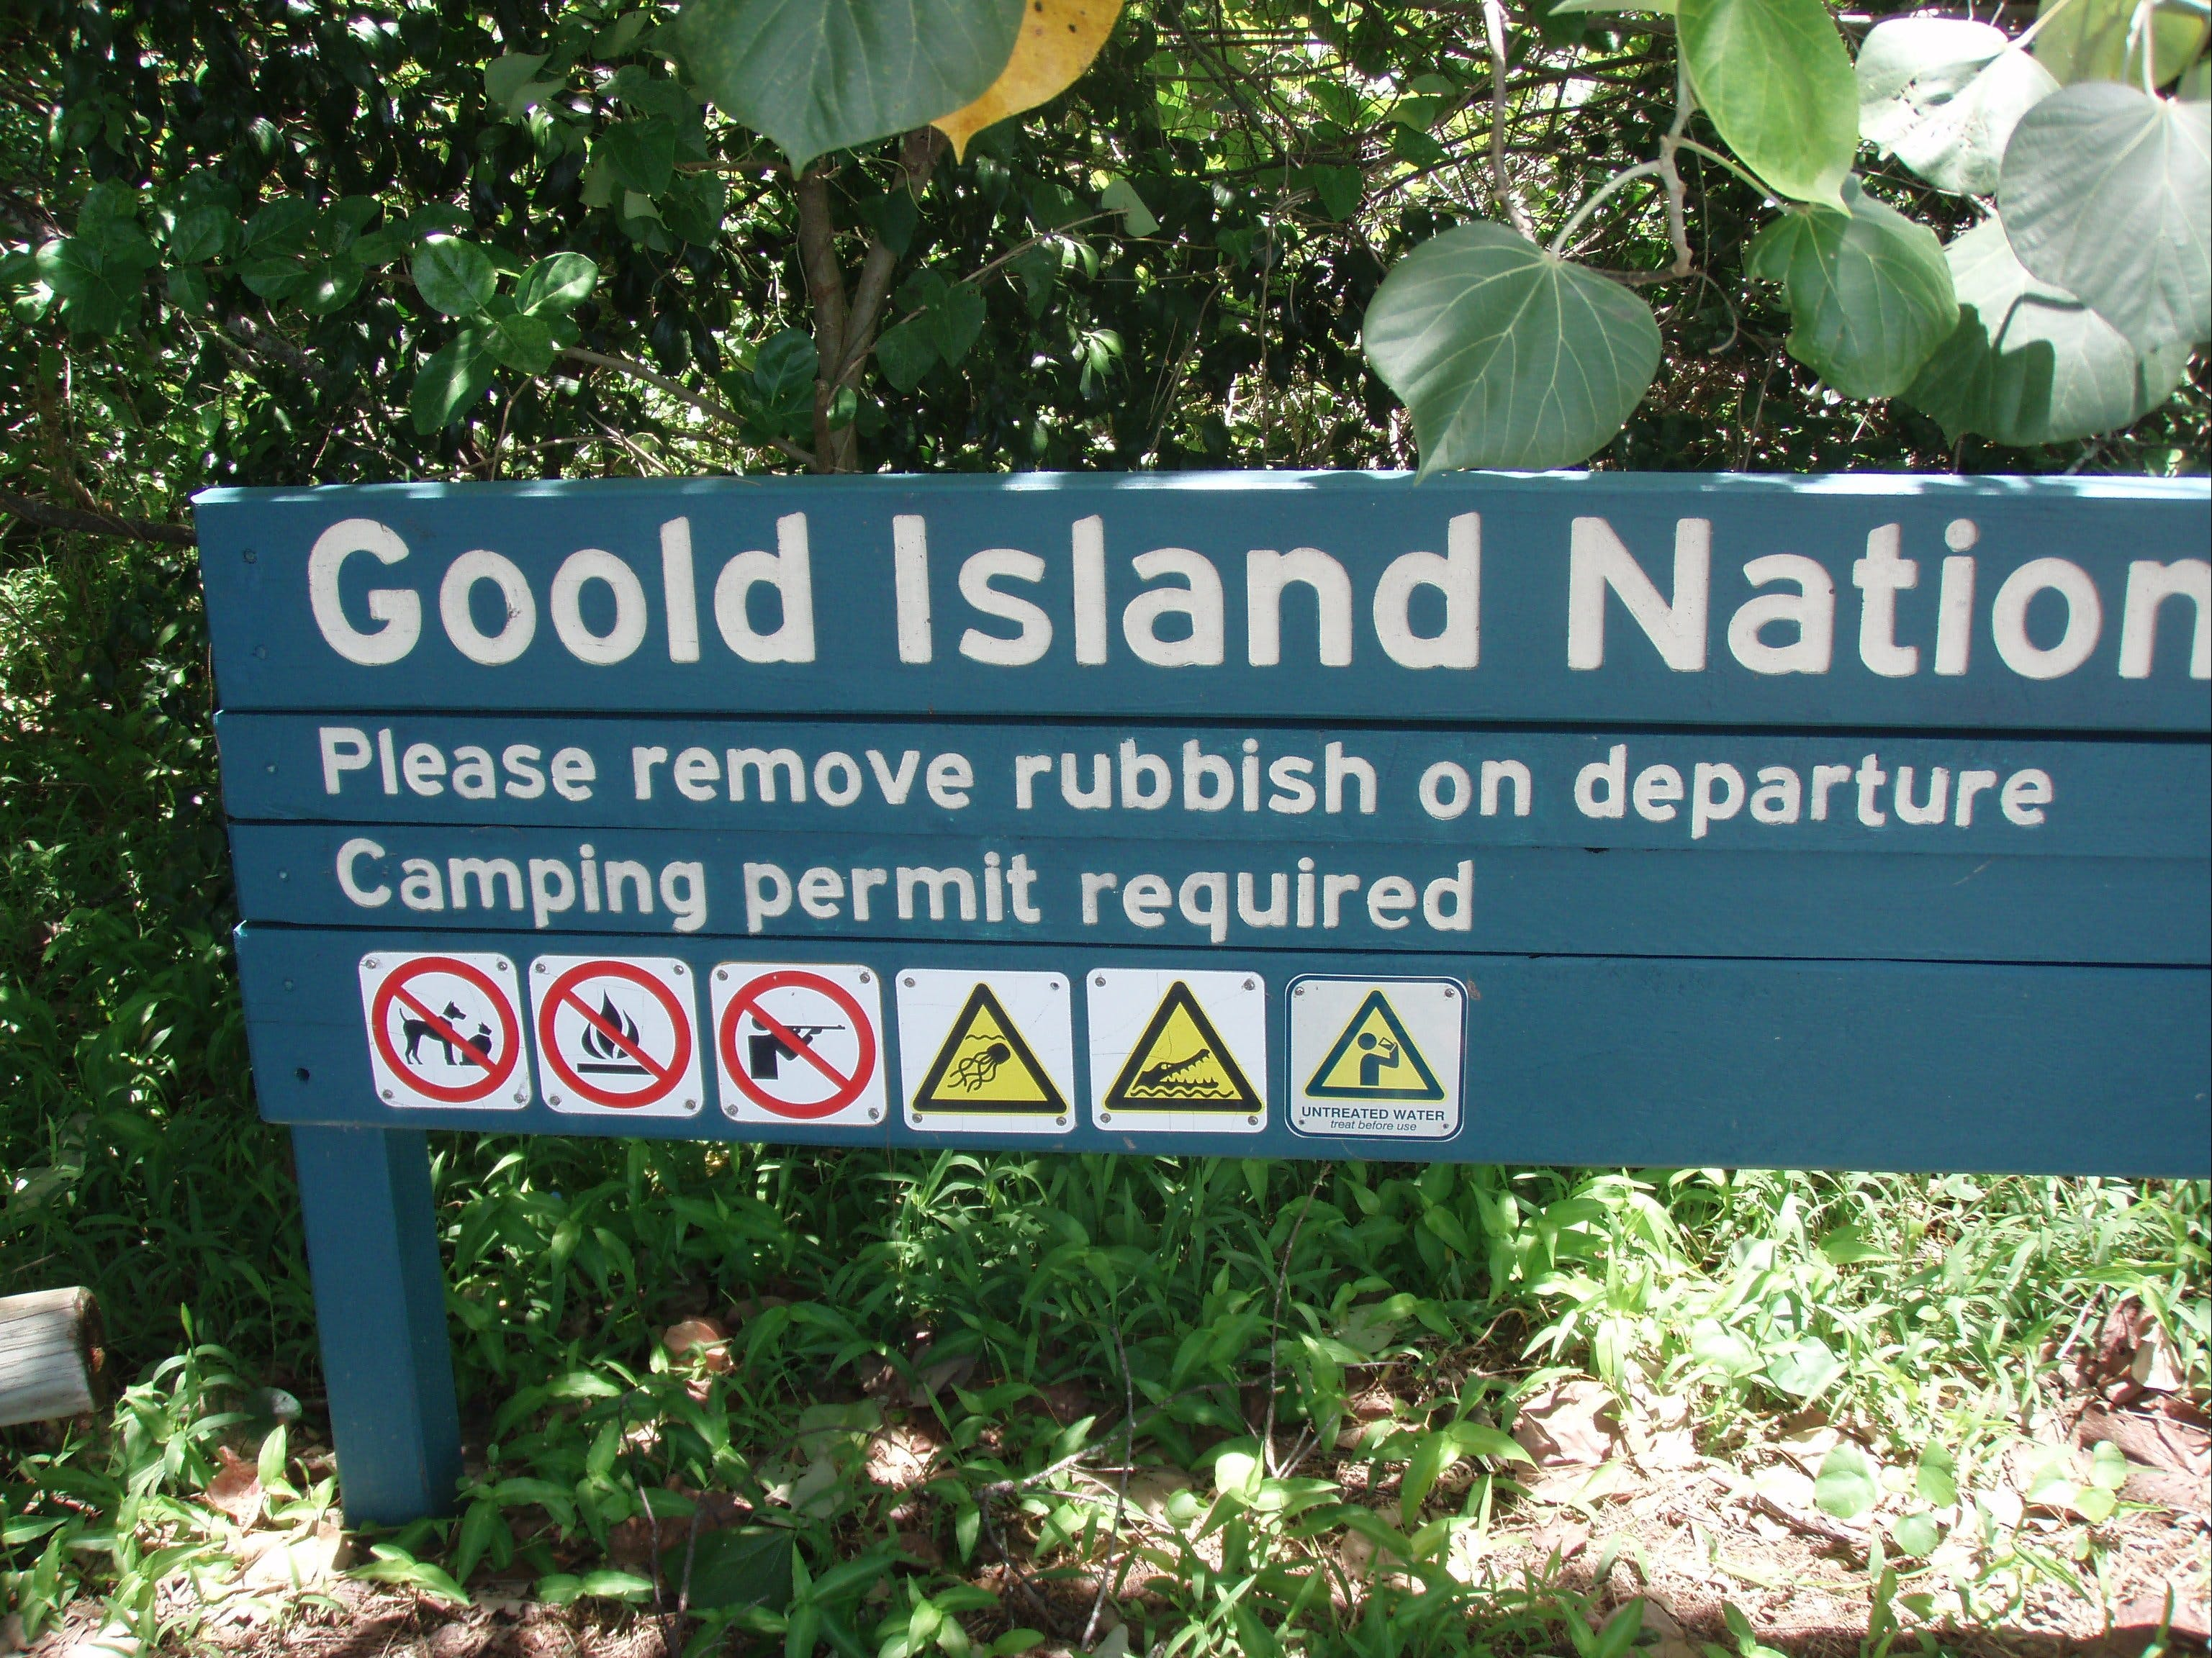 Goold Island National Park - Surfers Gold Coast